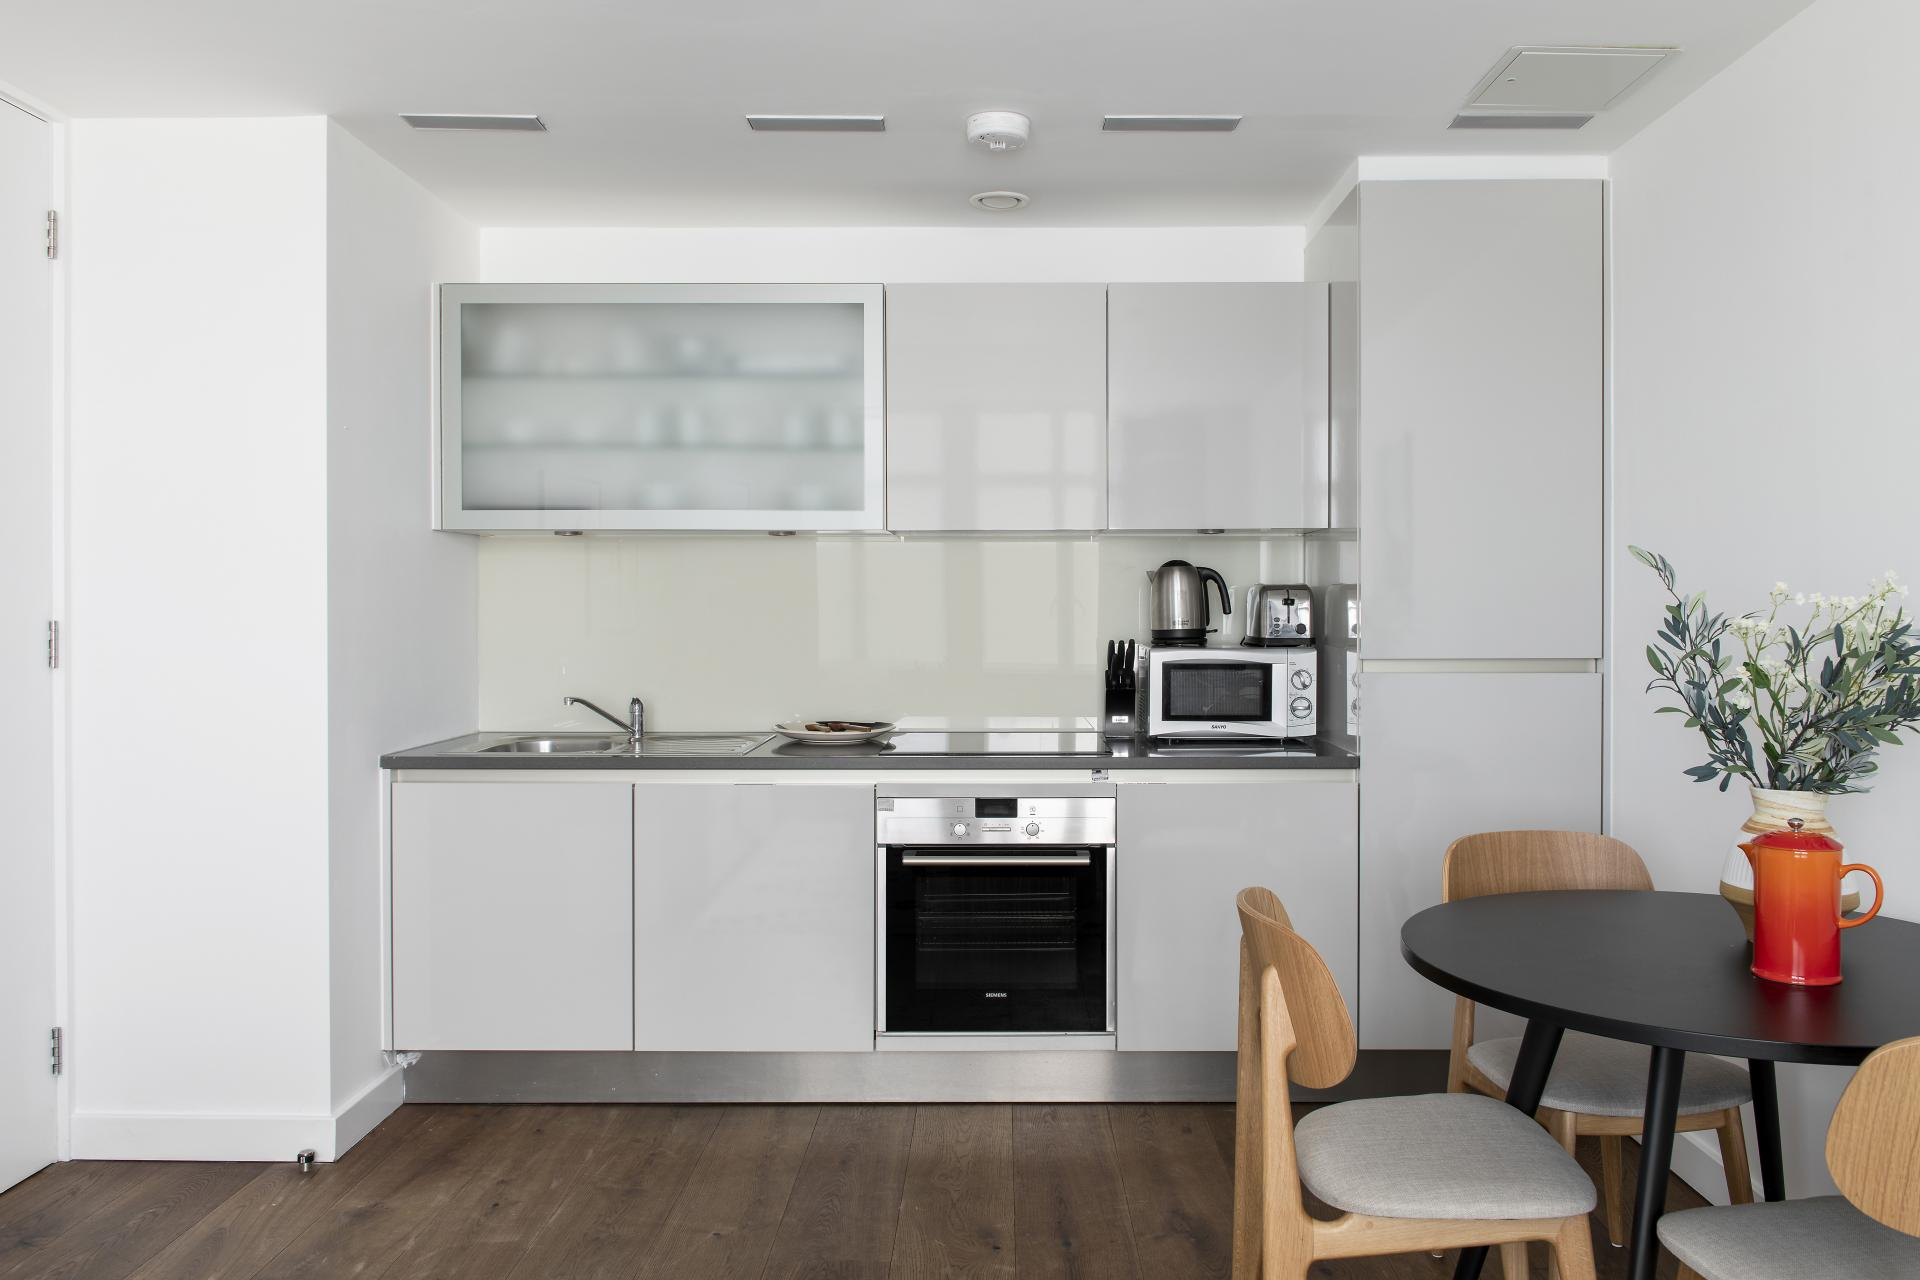 Kitchen at Cove St Martin's, Covent Garden, London - Citybase Apartments